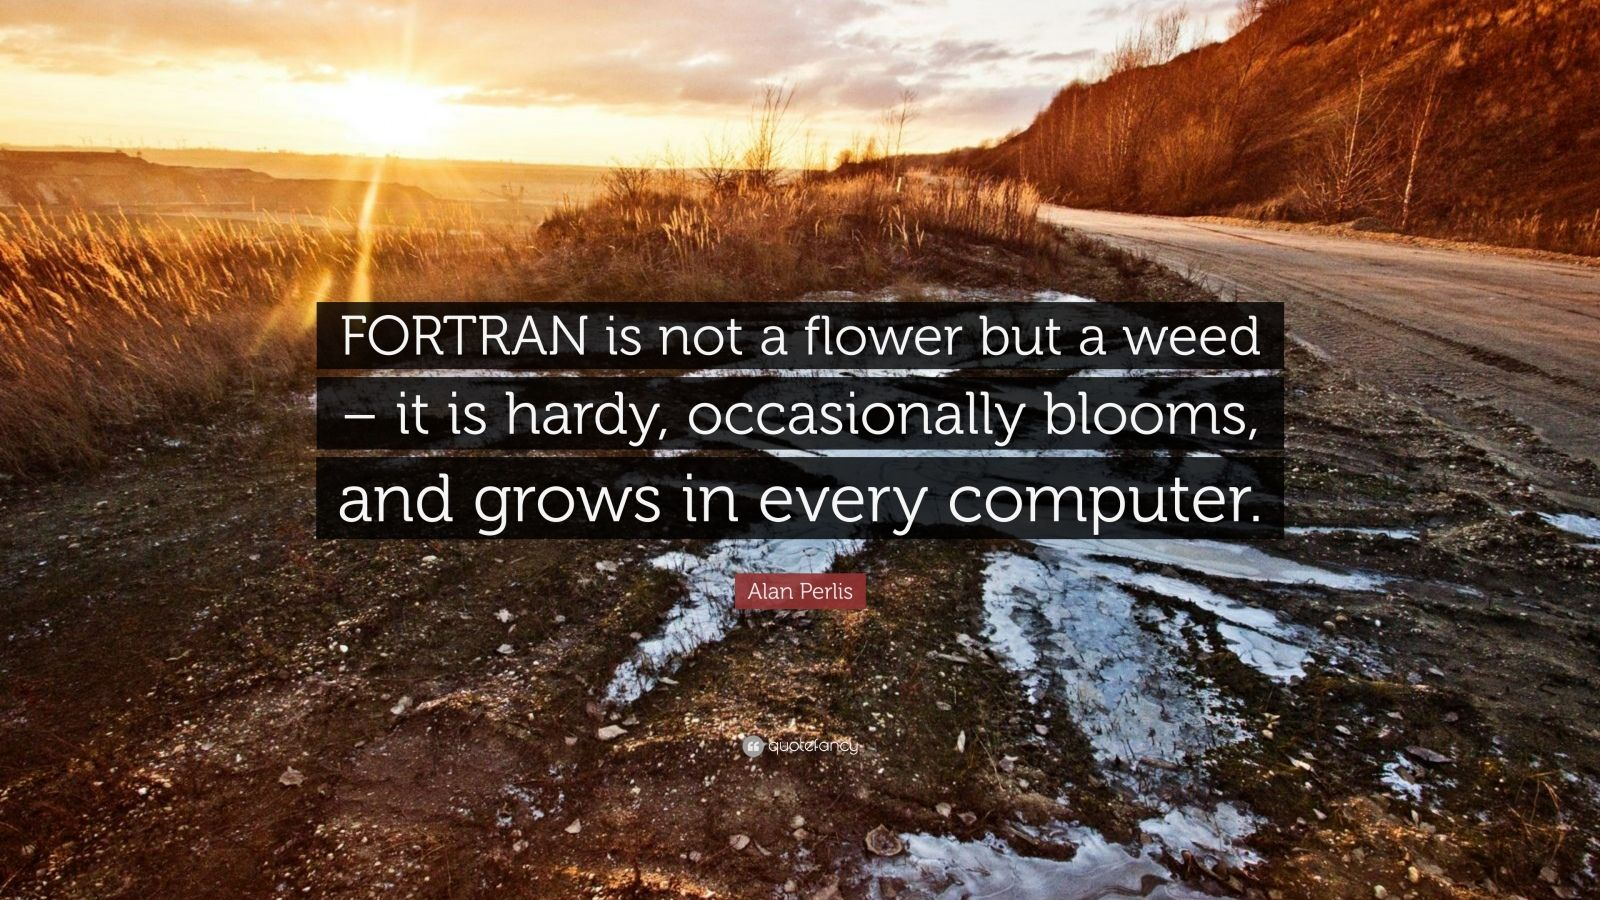 """Alan Perlis Quote: """"FORTRAN is not a flower but a weed – it is hardy, occasionally blooms, and grows in every computer."""""""